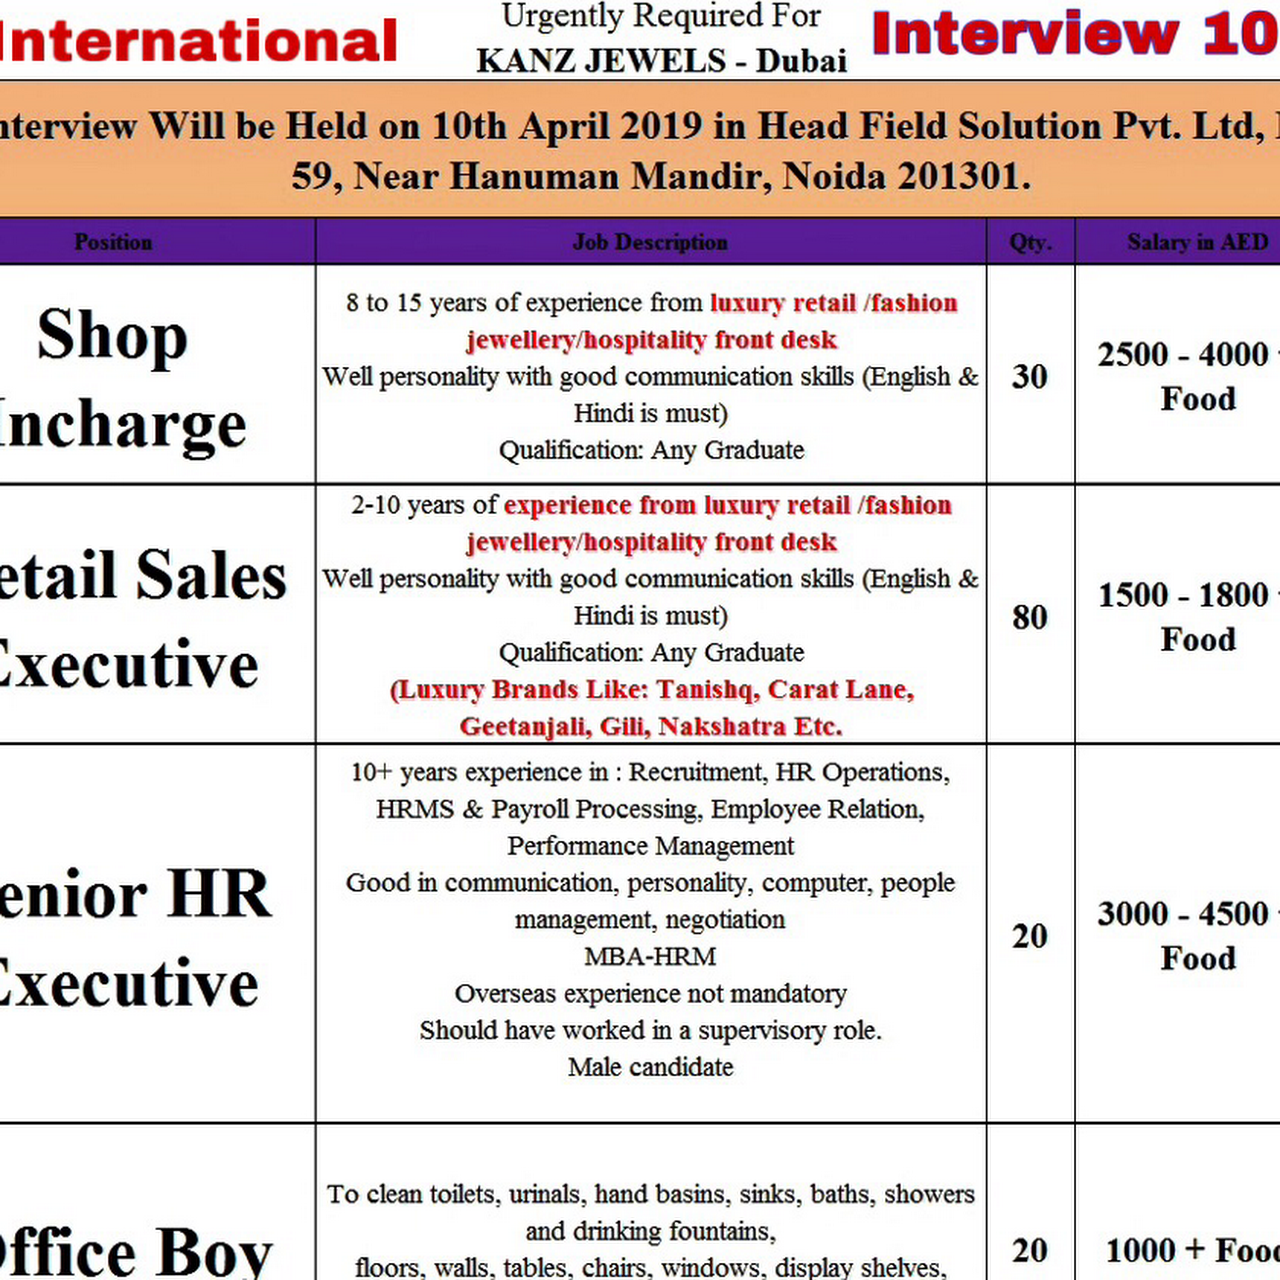 Hrd International - Job Centre in New Delhi